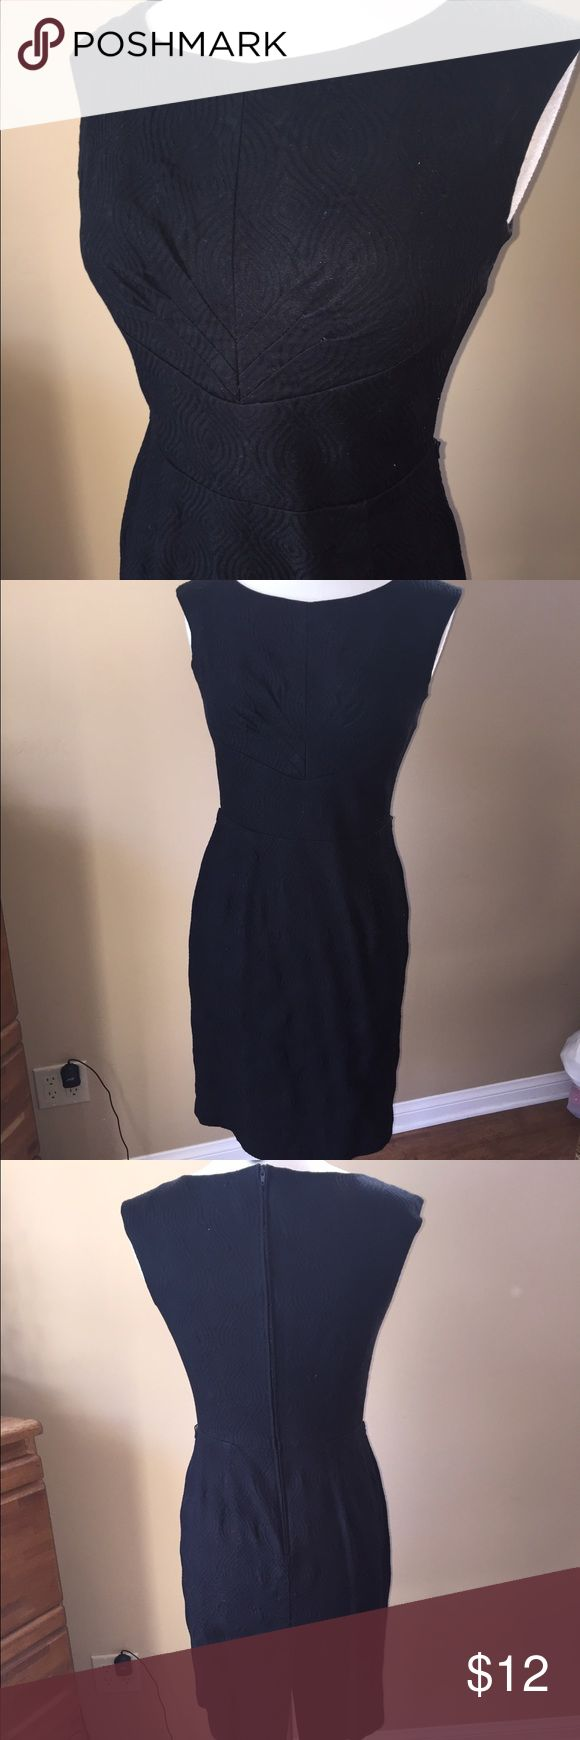 Karin Stevens Black Dress (runs small) Simple black dress with nice seam detail on bodice. Fabric is textured. Bodice lined, but not rest of dress. Back zipper, thread belt loops, but no belt. Dress is tight on mannequin, so probably a better fit on a size 4. Shown on size 6/8 mannequin (mannequin measures 37-26-37)👗👚👜Check out the $6 section of my closet (before the sold items). Lots of bundle-worthy $6 items! 15% bundle discount on 2+ items in a bundle.🚫NO TRADES🚫 Karin Stevens…